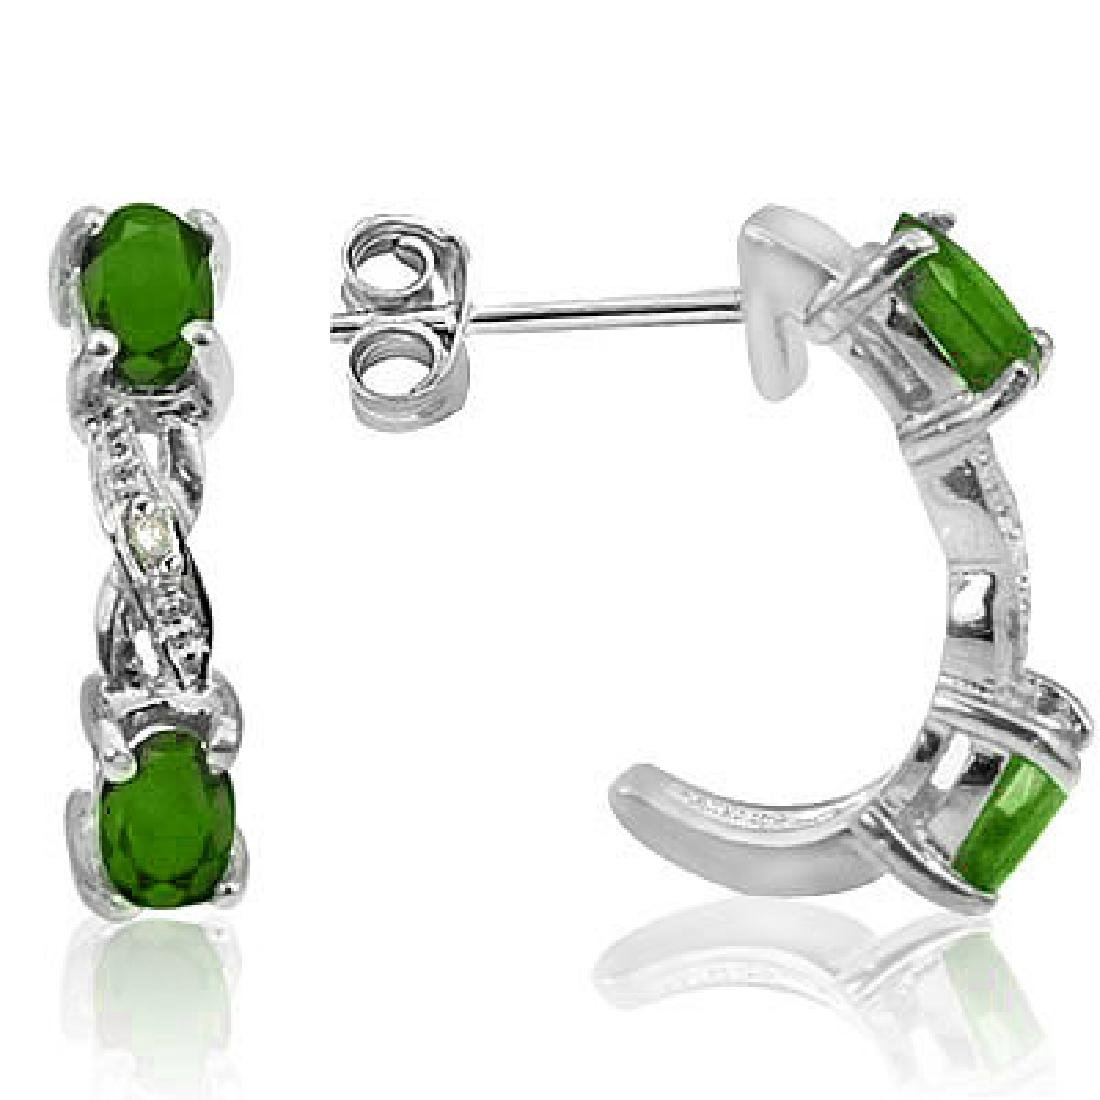 2CT EMERALD GEMSTONE STERLING HALF HOOP EARRINGS